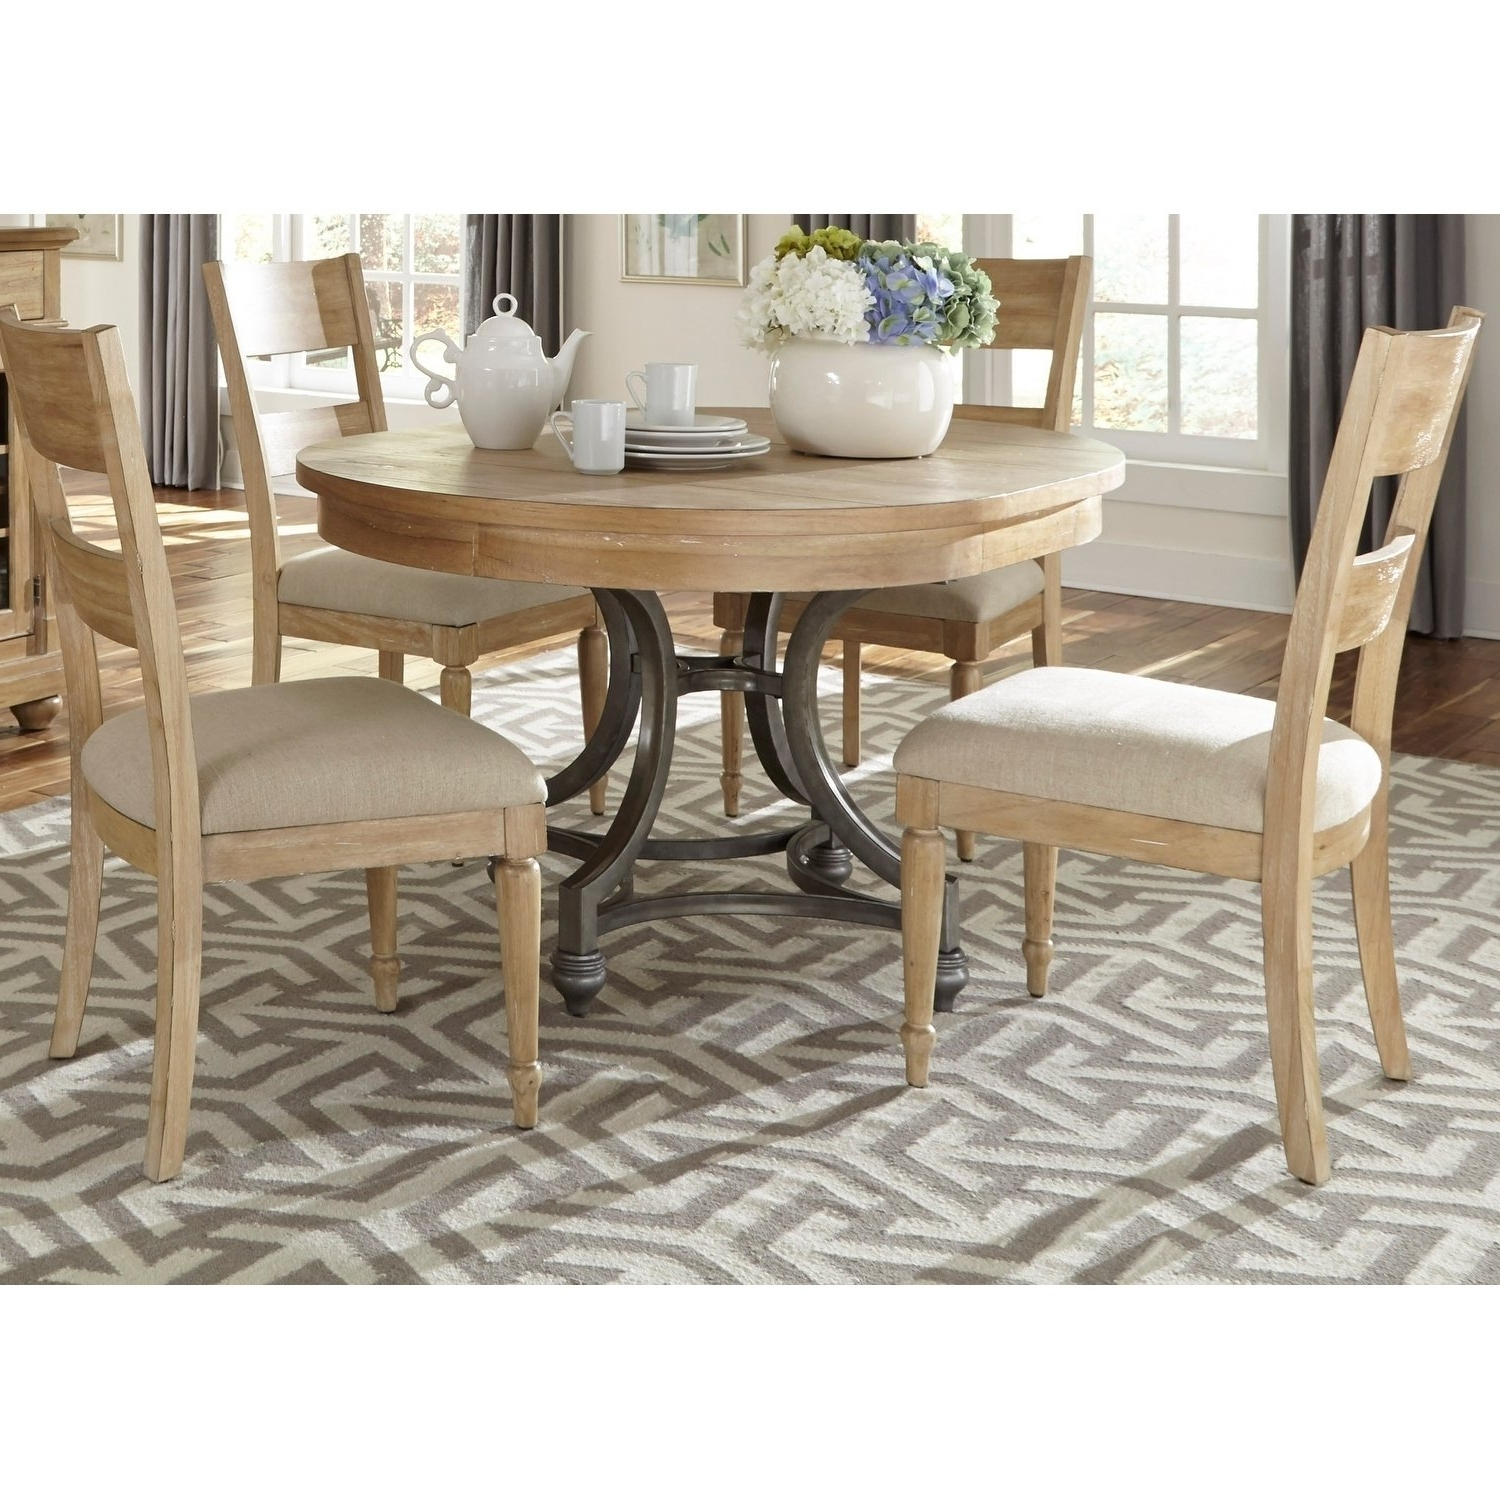 Jaxon 5 Piece Round Dining Sets With Upholstered Chairs within Most Up-to-Date Shop Harbor View Sand 5-Piece Round Table Set - On Sale - Free